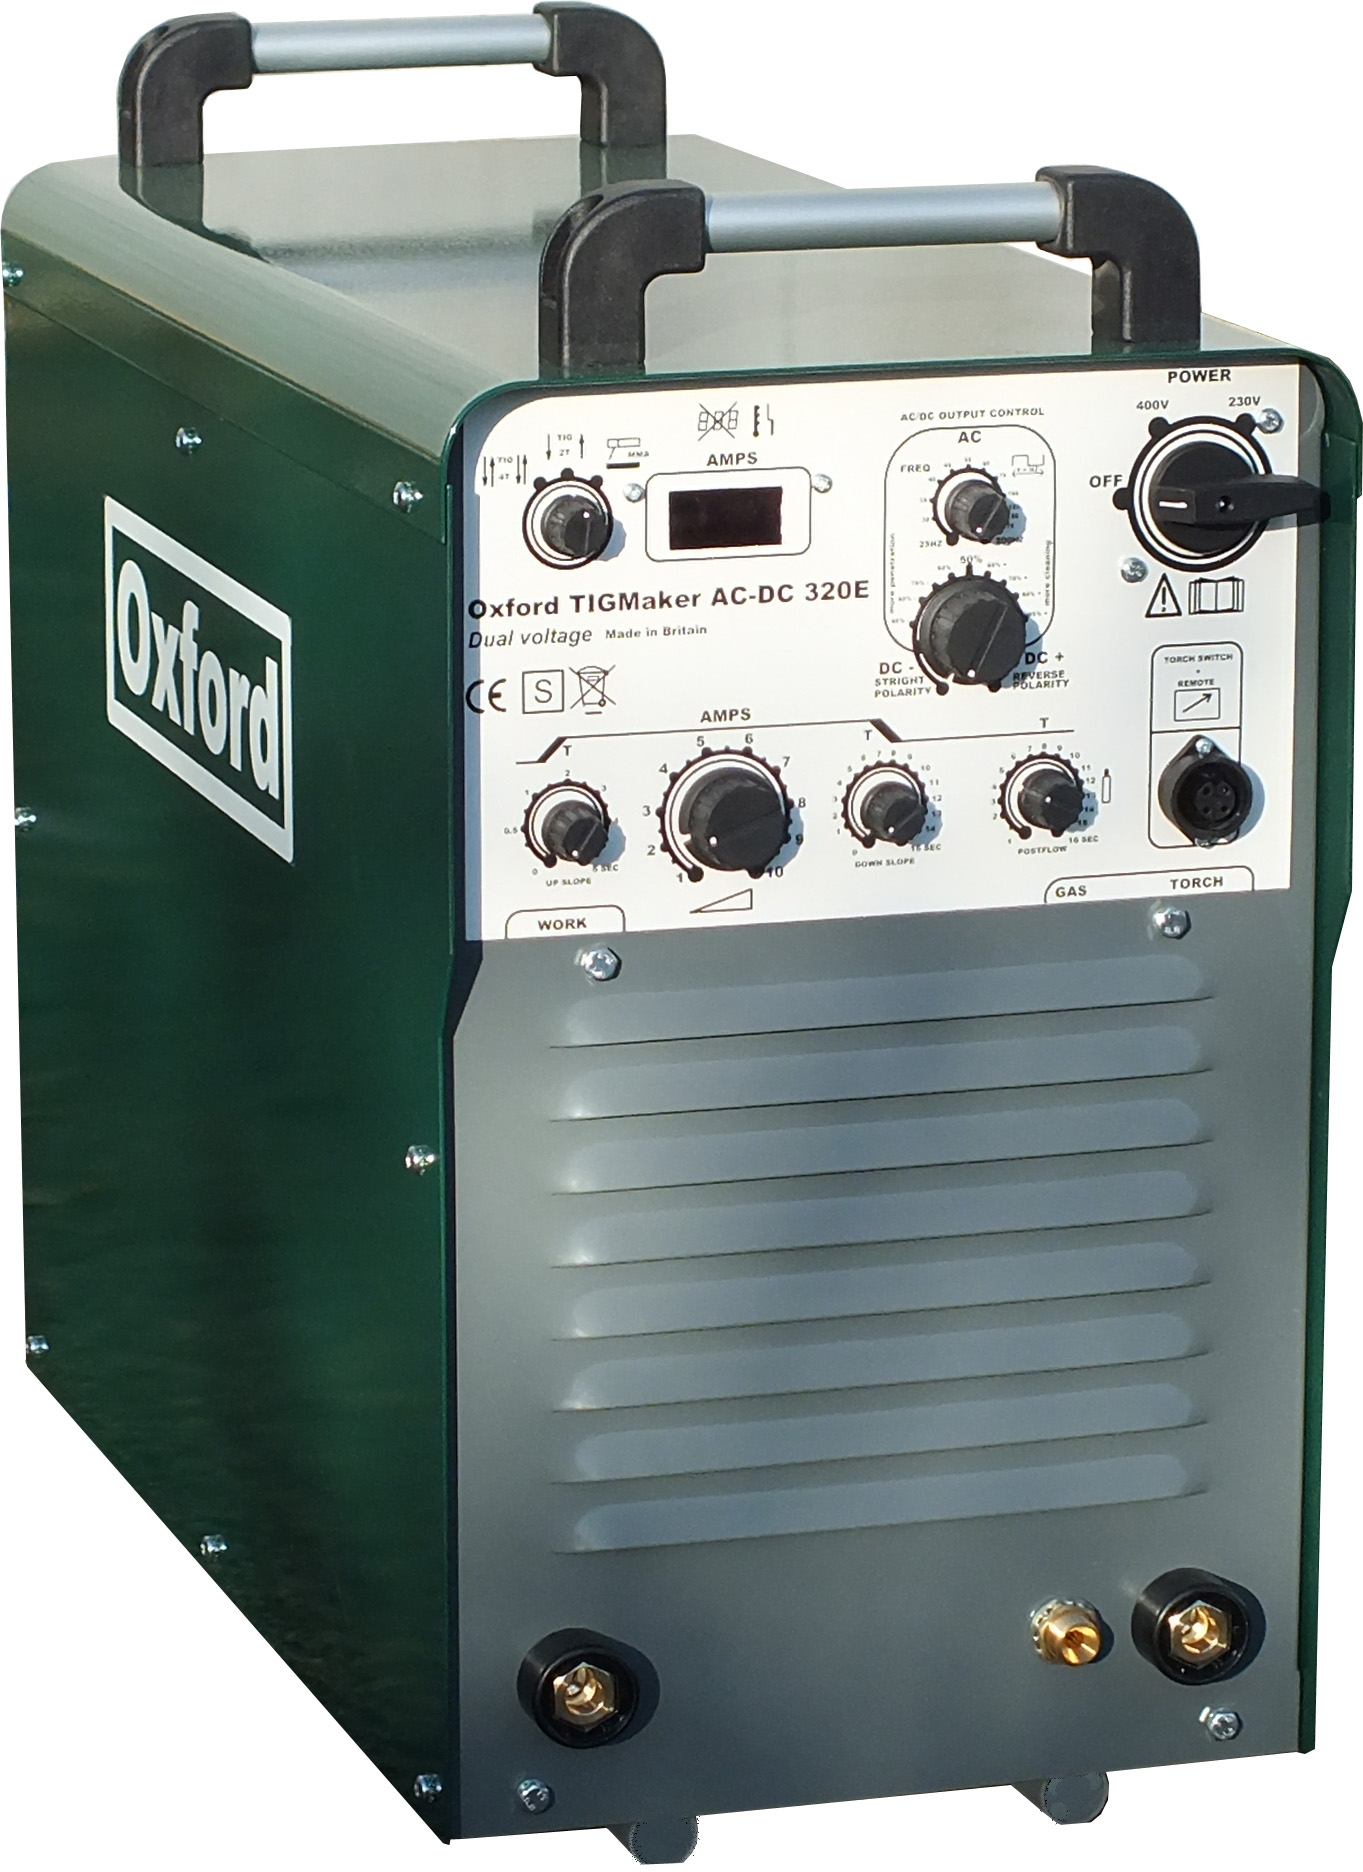 Oxford  TIGMaker 270E dual voltage 230V/400V Image